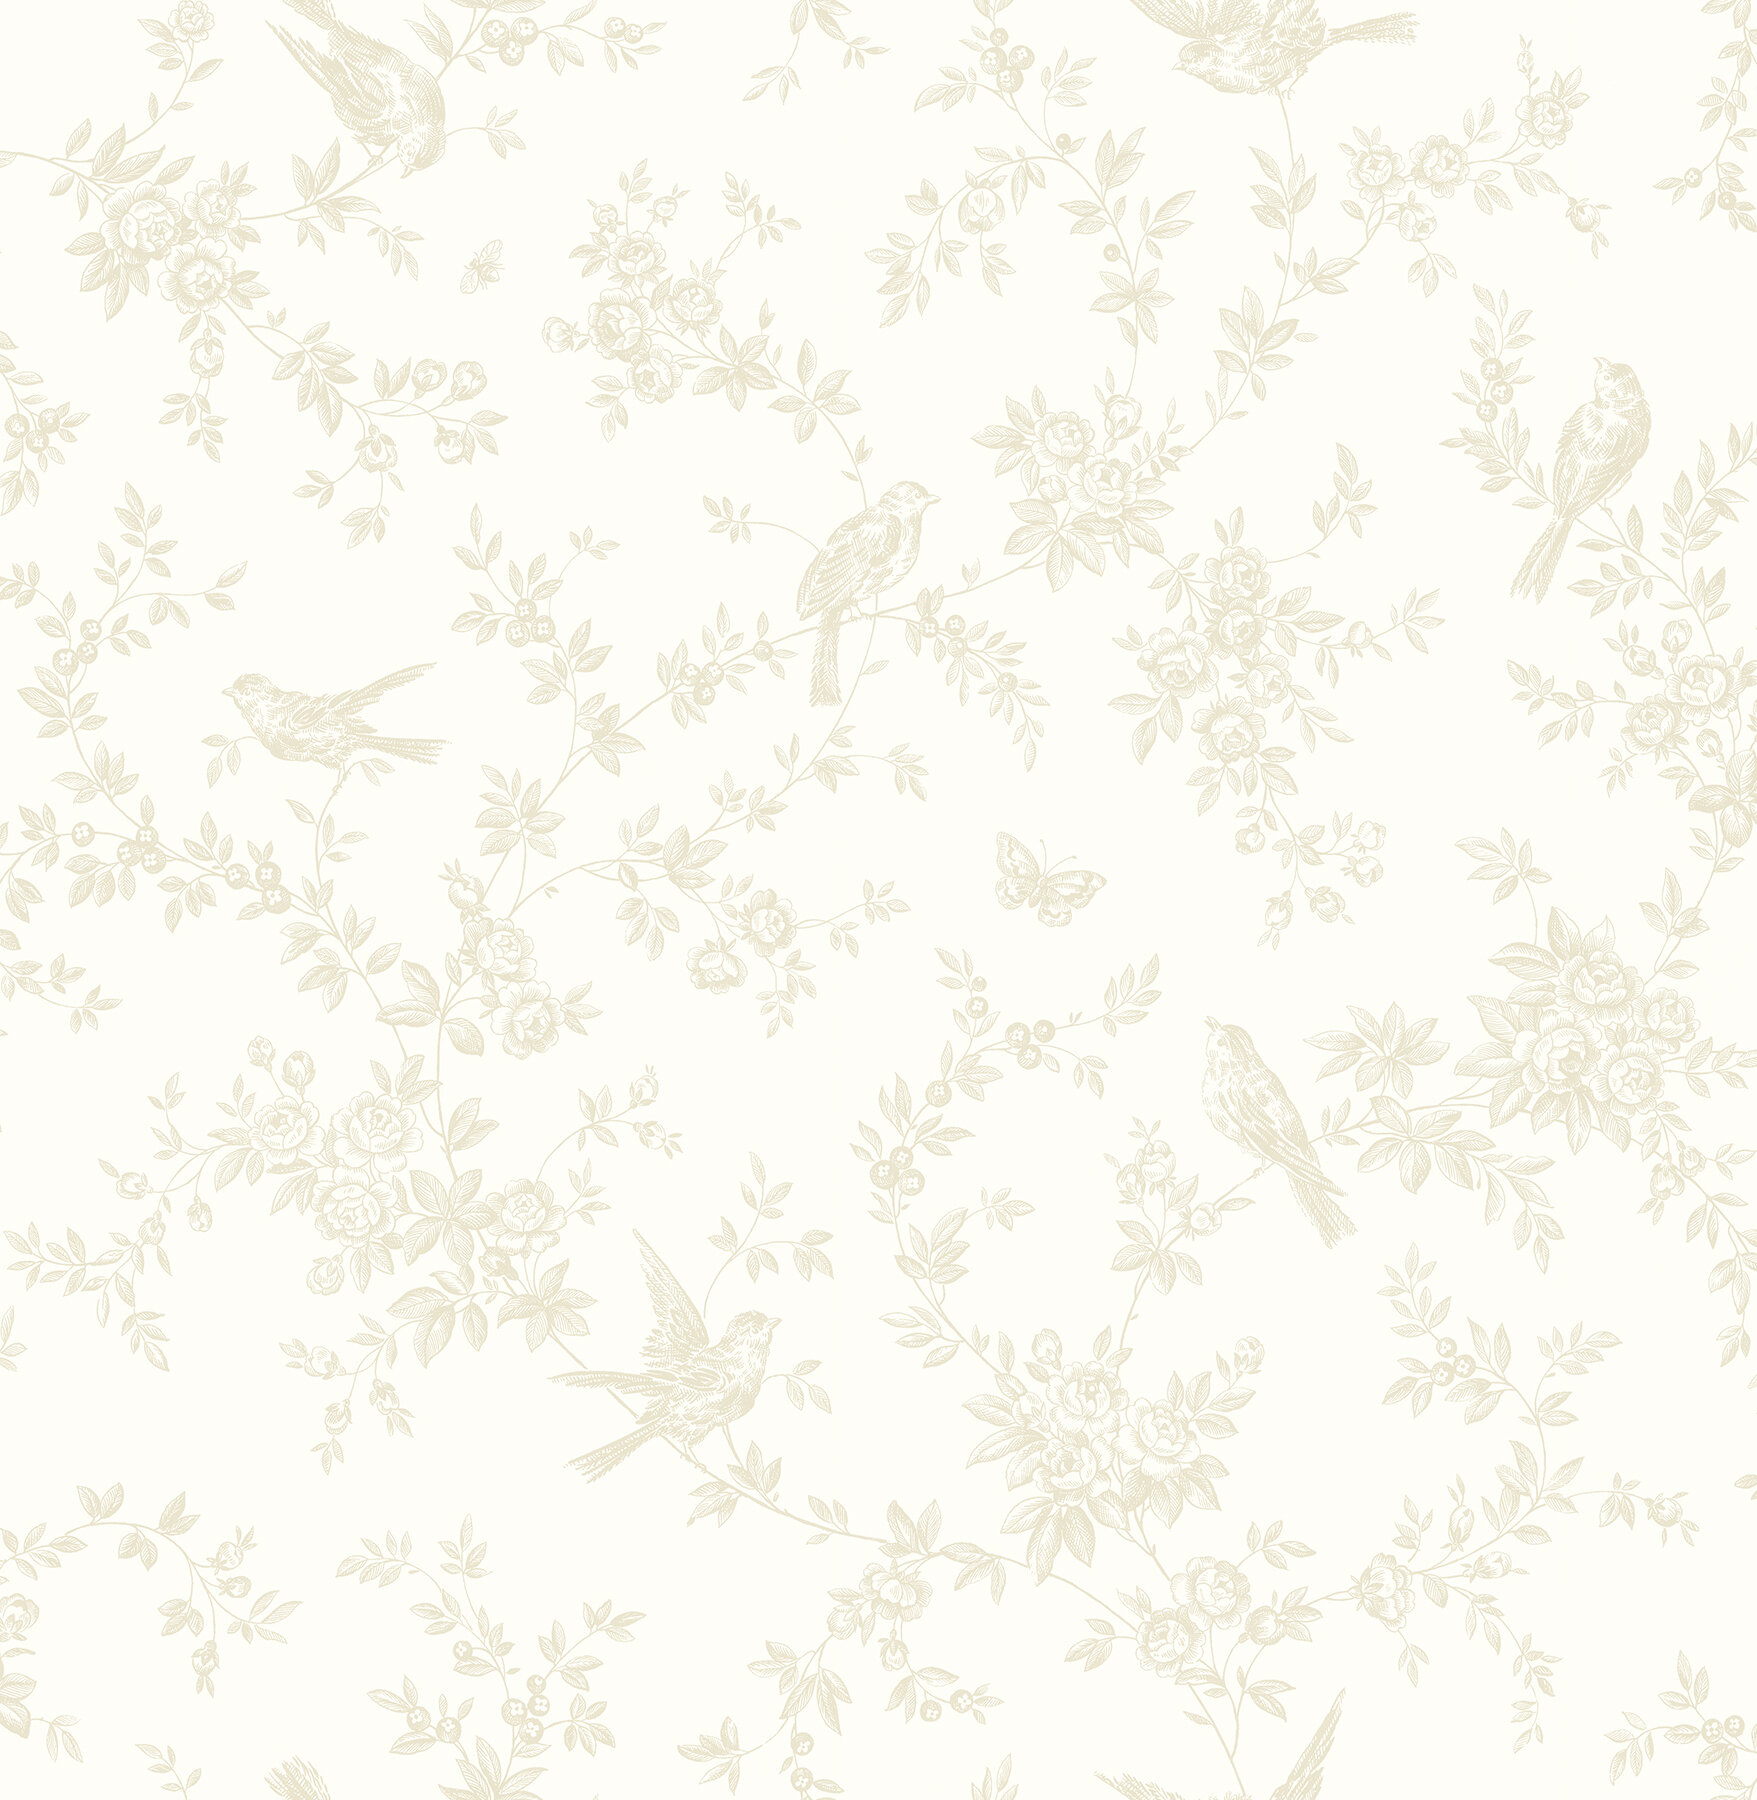 Ophelia Co Thorp Floral Trails 33 X 20 5 Wallpaper Roll Wayfair